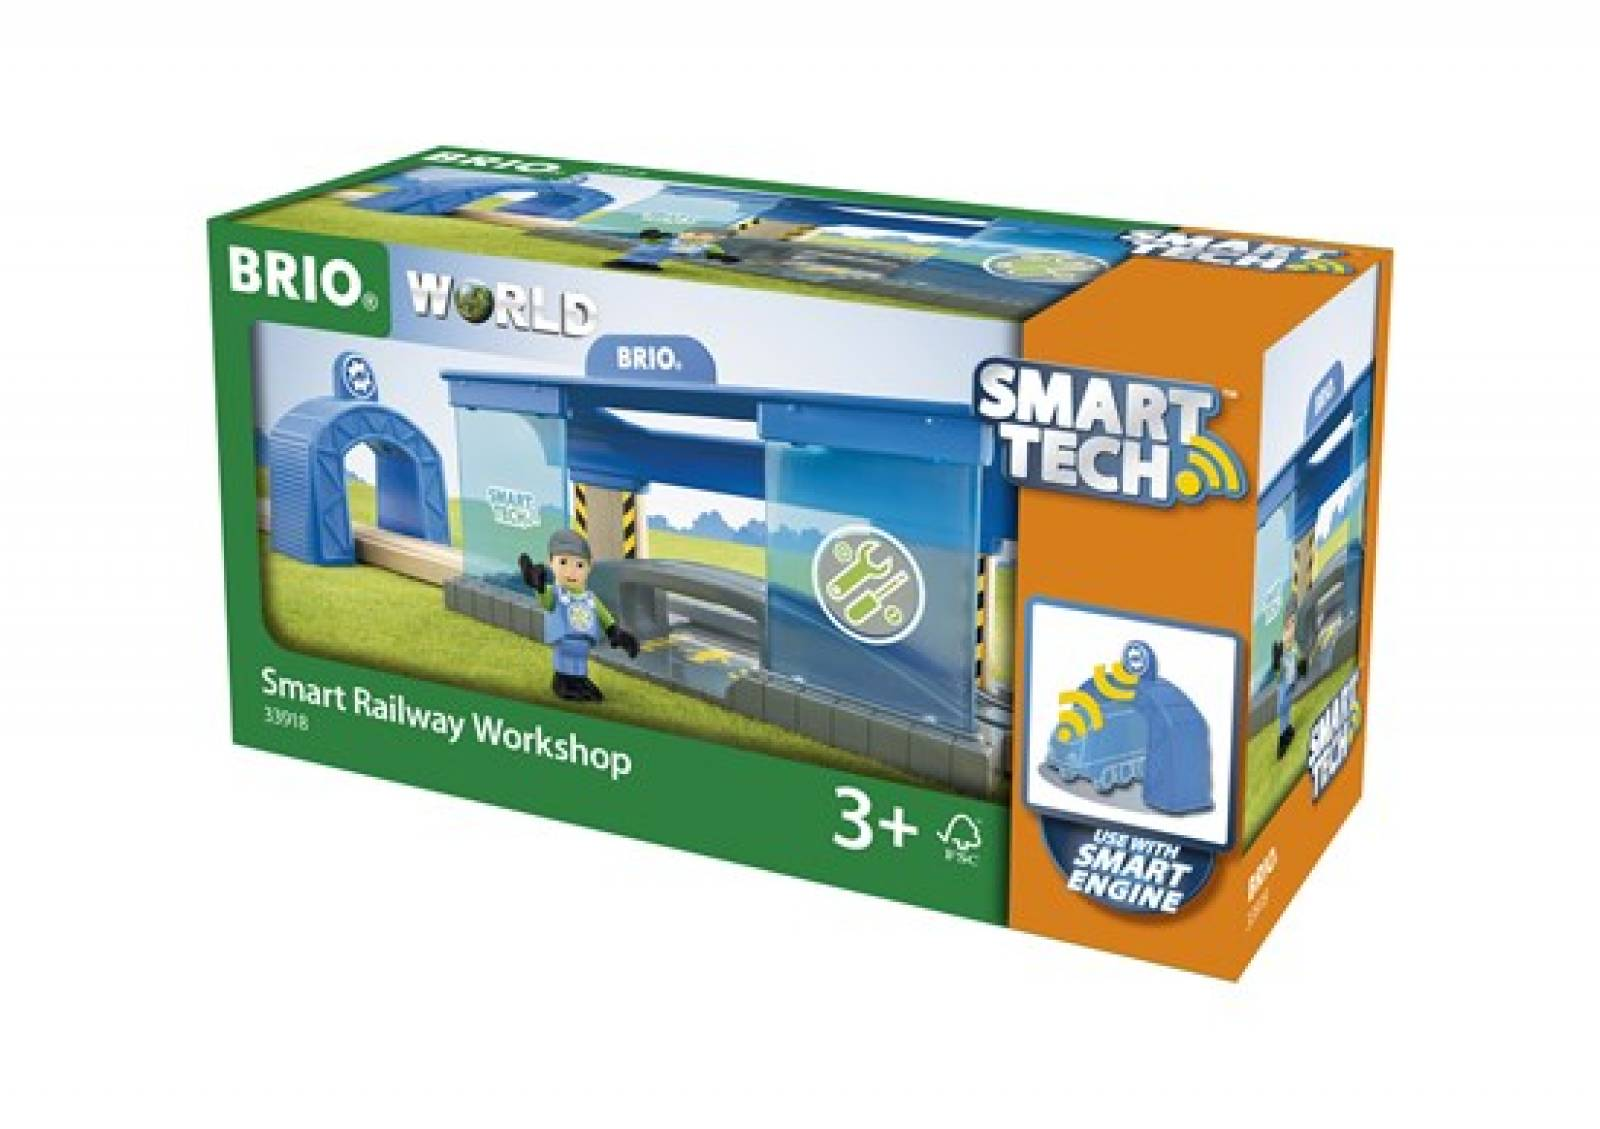 Smart Tech Railway Workshop BRIO® Wooden Railway Age 3+ thumbnails